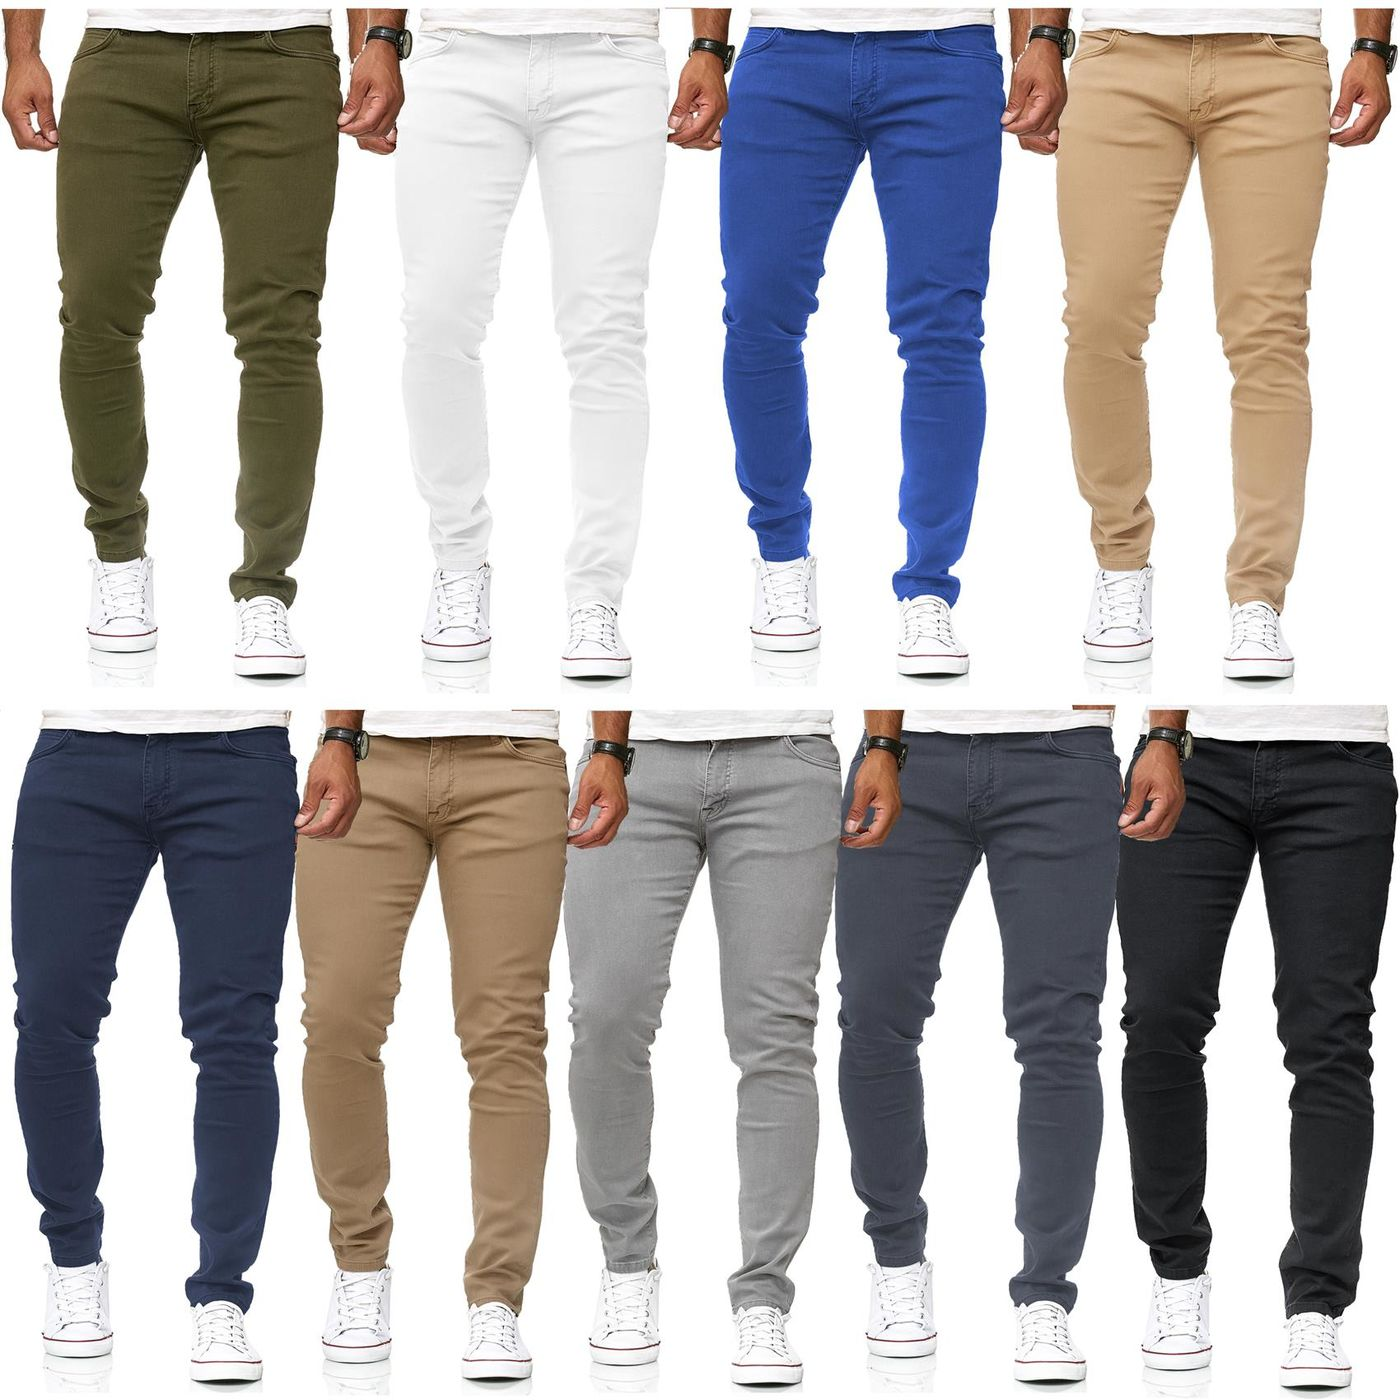 6ca25230cfbe77 Red Bridge Men's Jeans Denim Pants Slim Fit Skinny Jeans Denim Colored